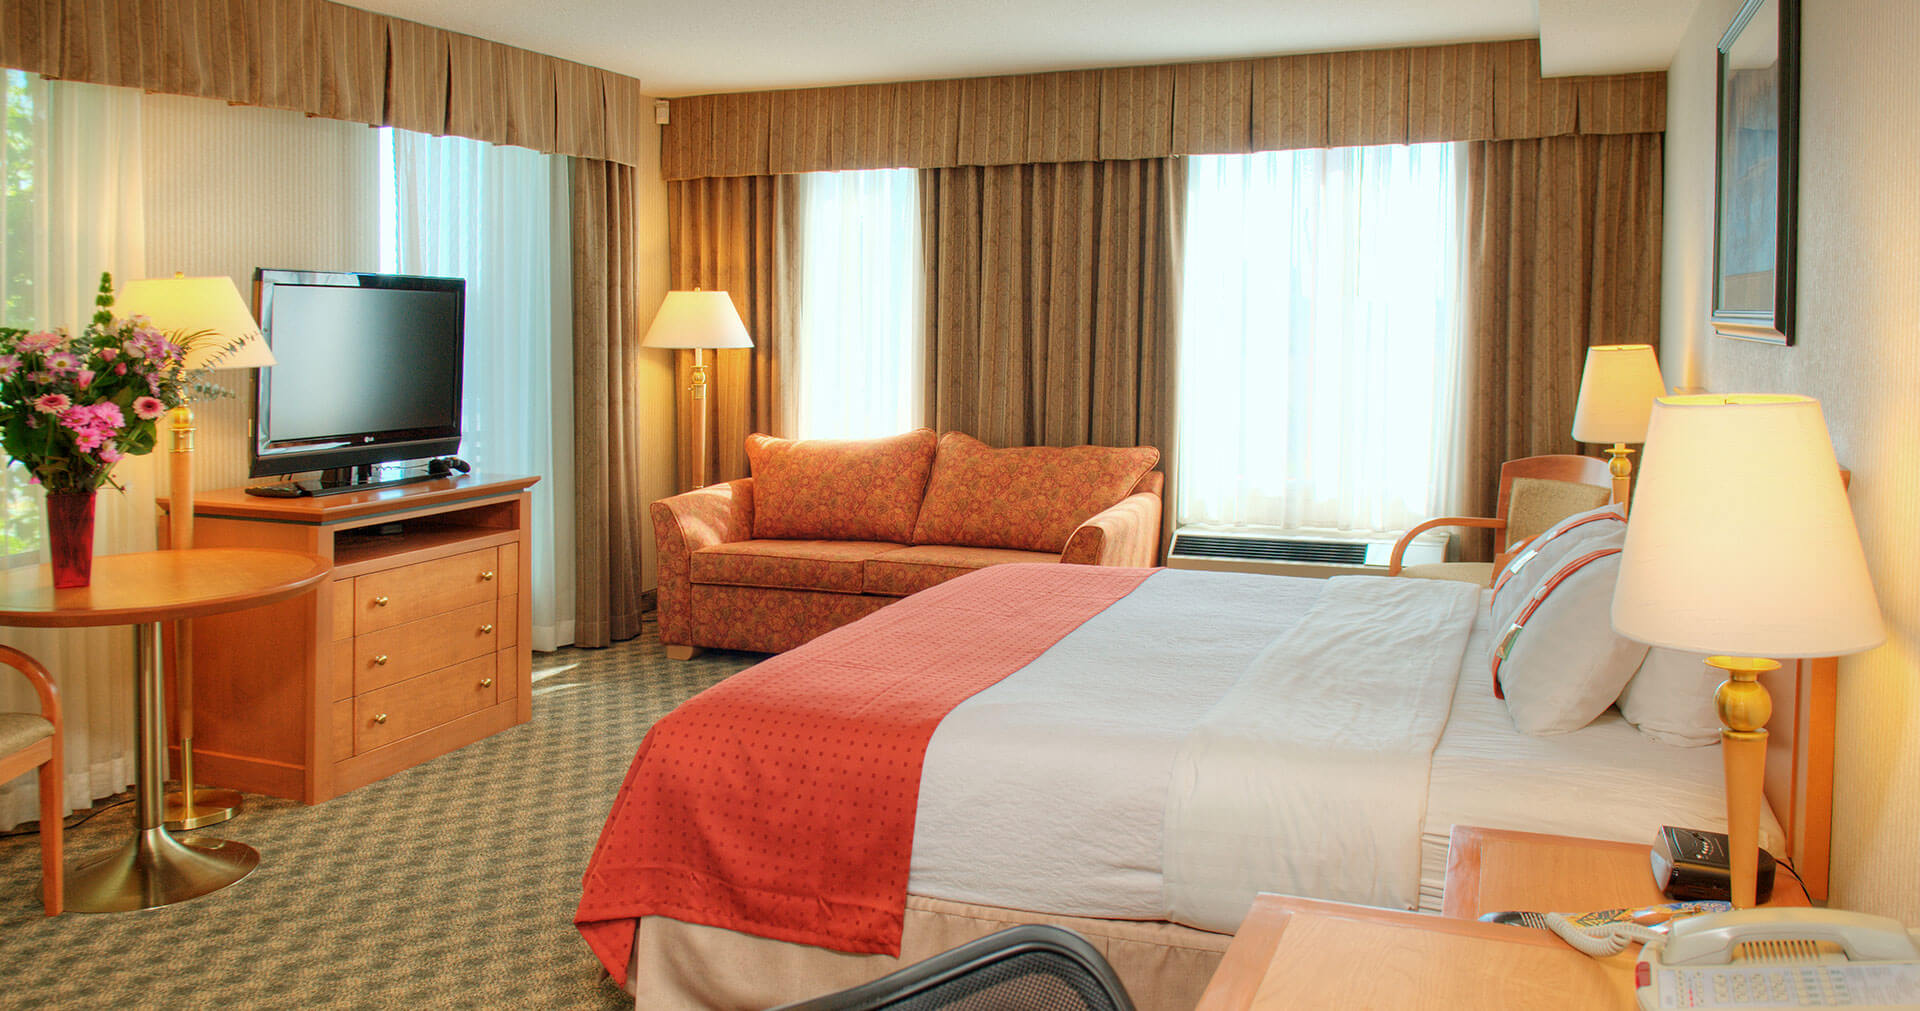 Bright single room with furnishings at the Holiday Inn North Vancouver